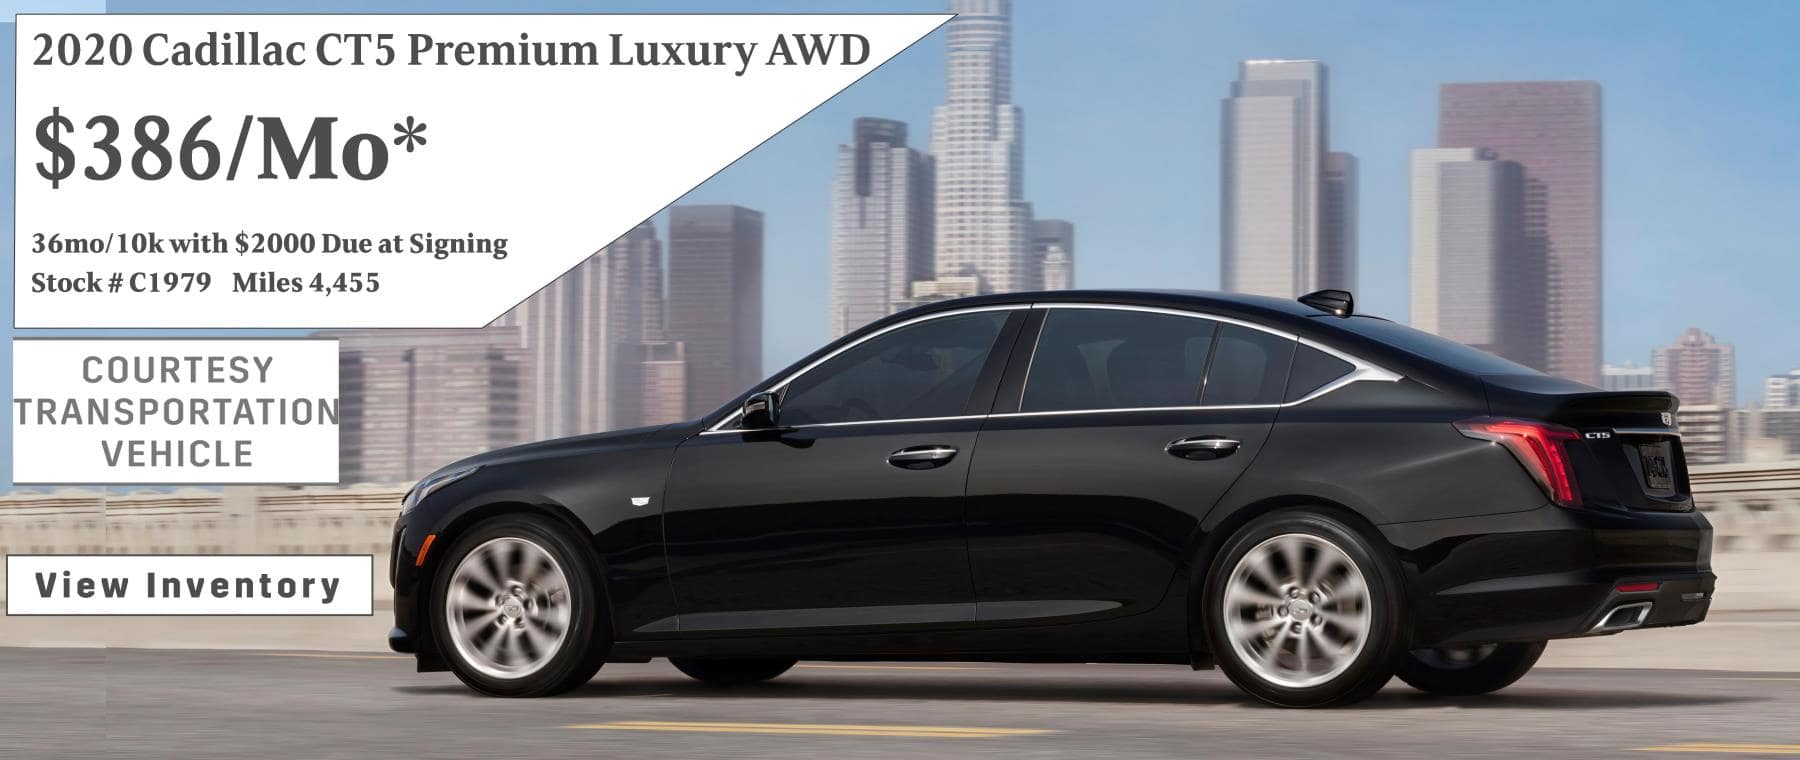 March Cadillac CT5 Lease Special $386/mo*